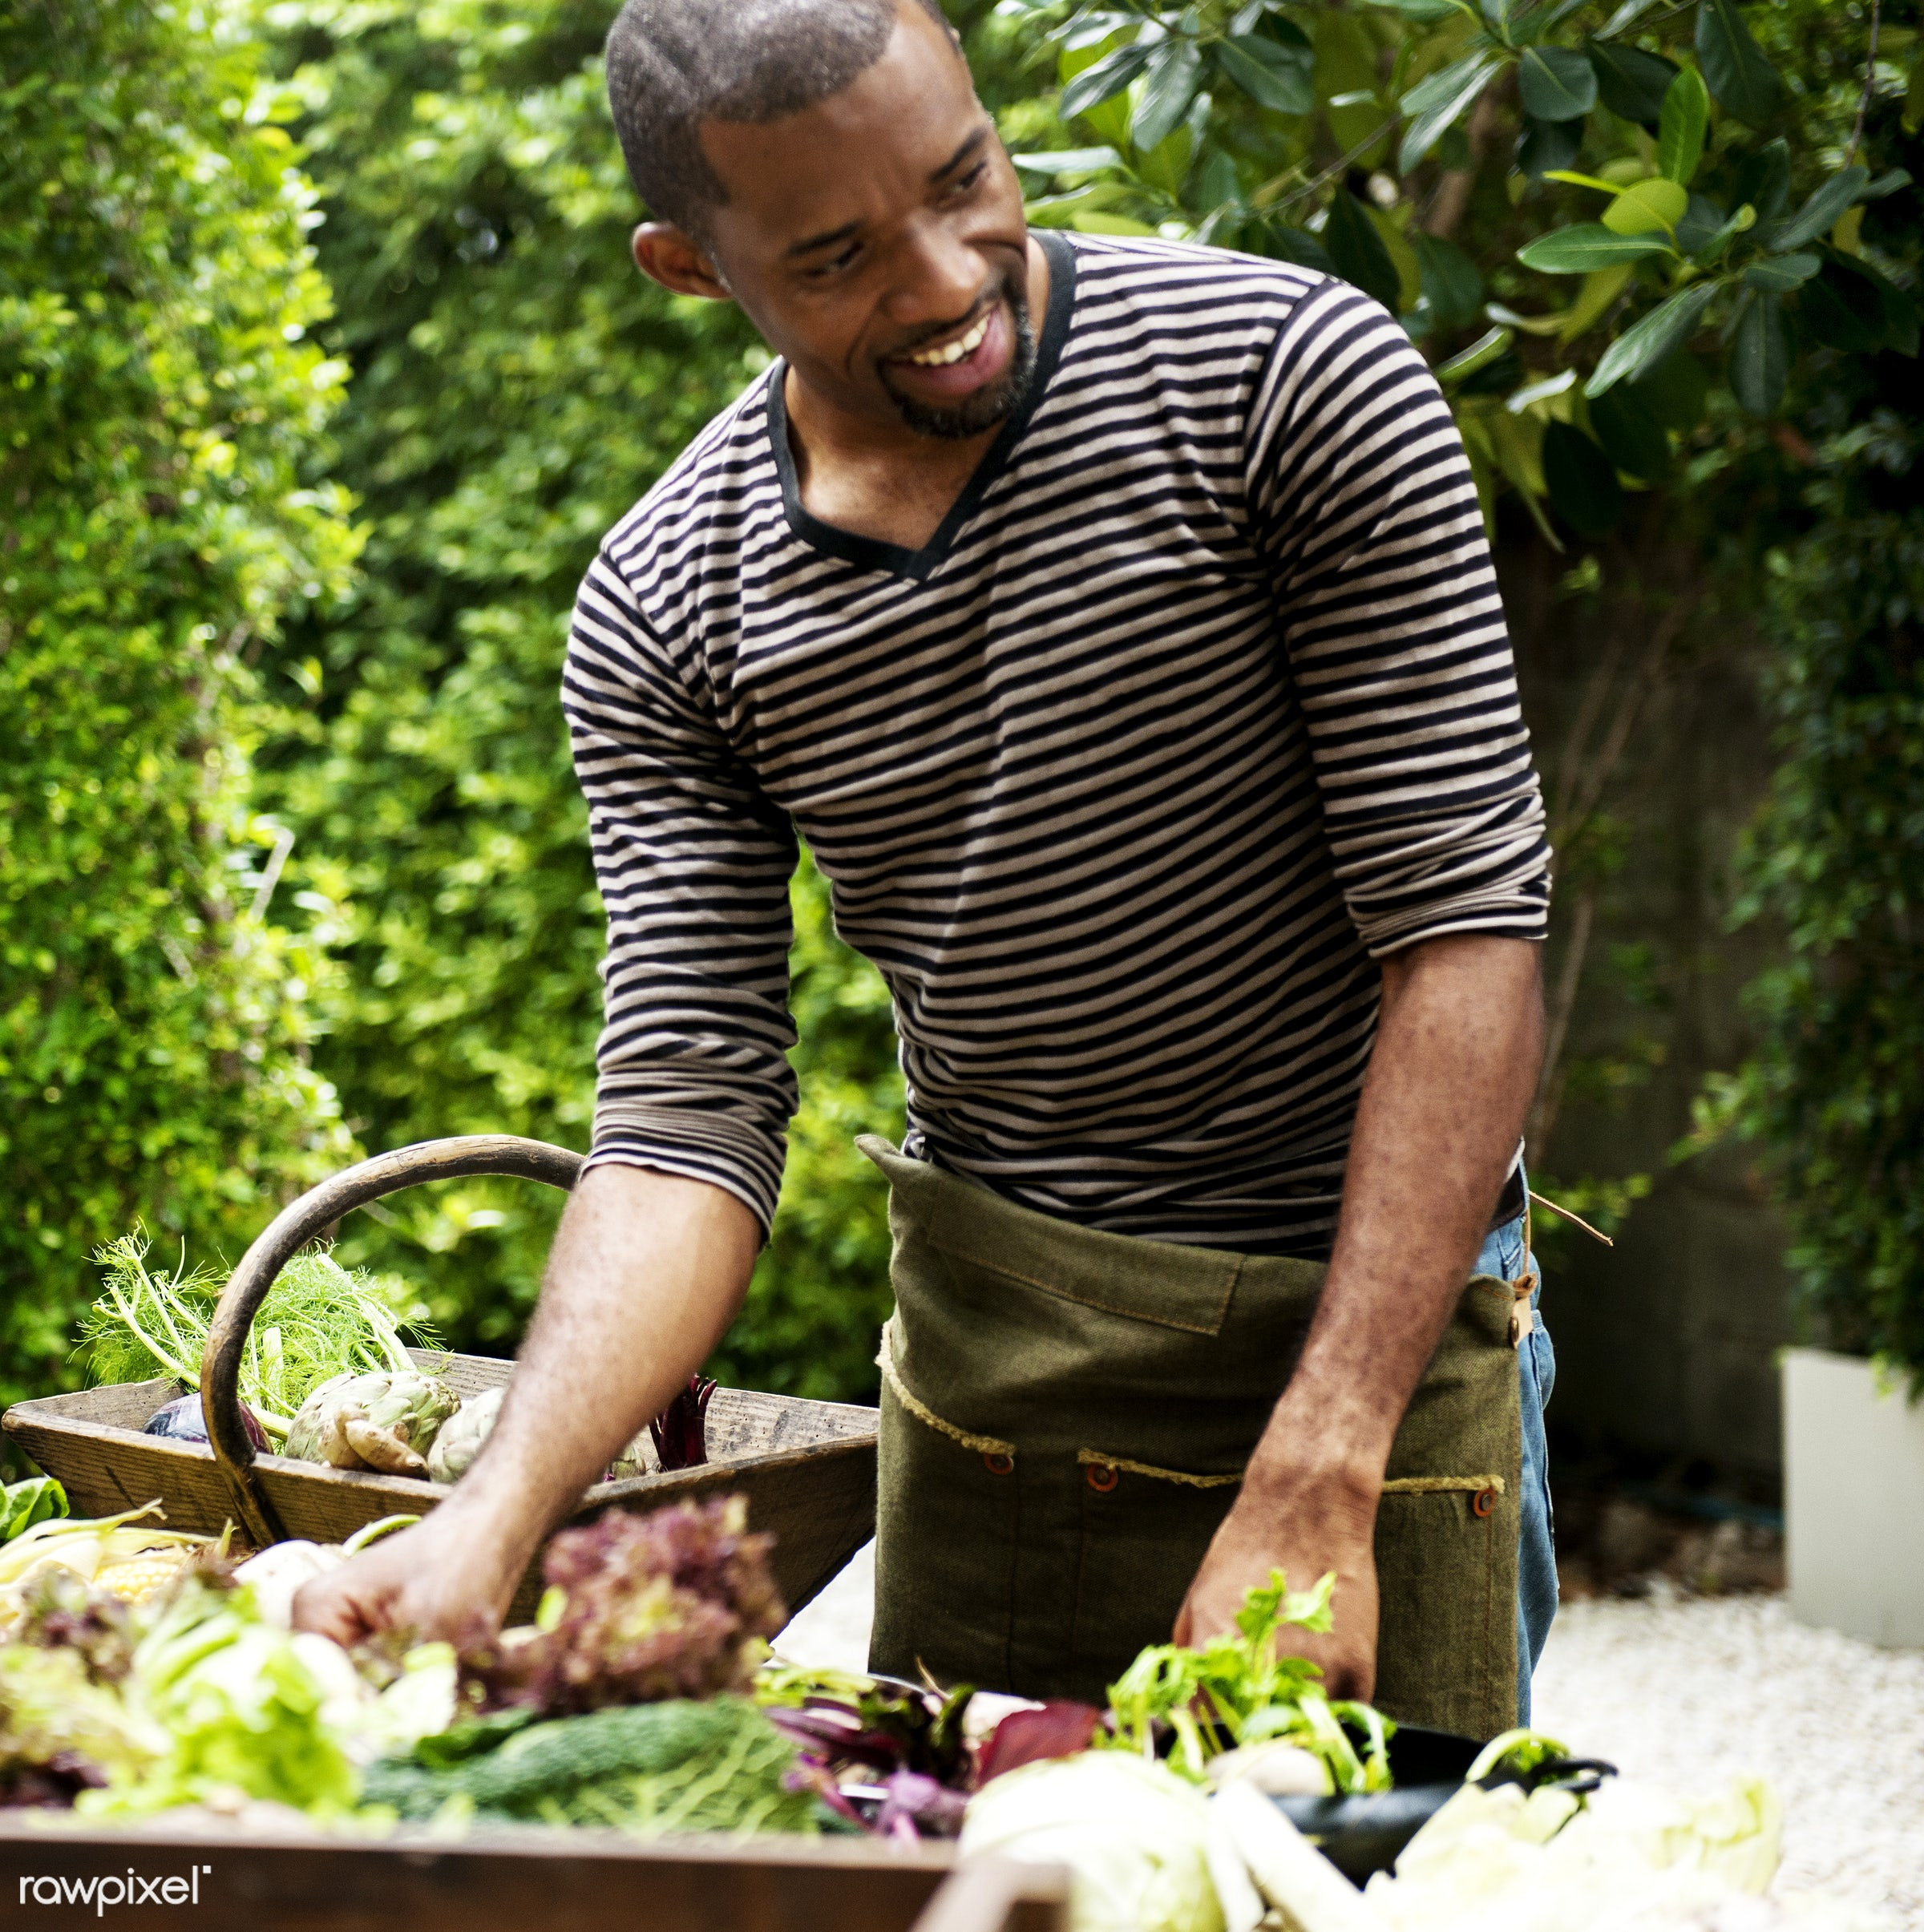 raw, diverse, buy, farm, ingredients, farmer, nature, fresh, choosing, wooden basket, products, african descent, agriculture...